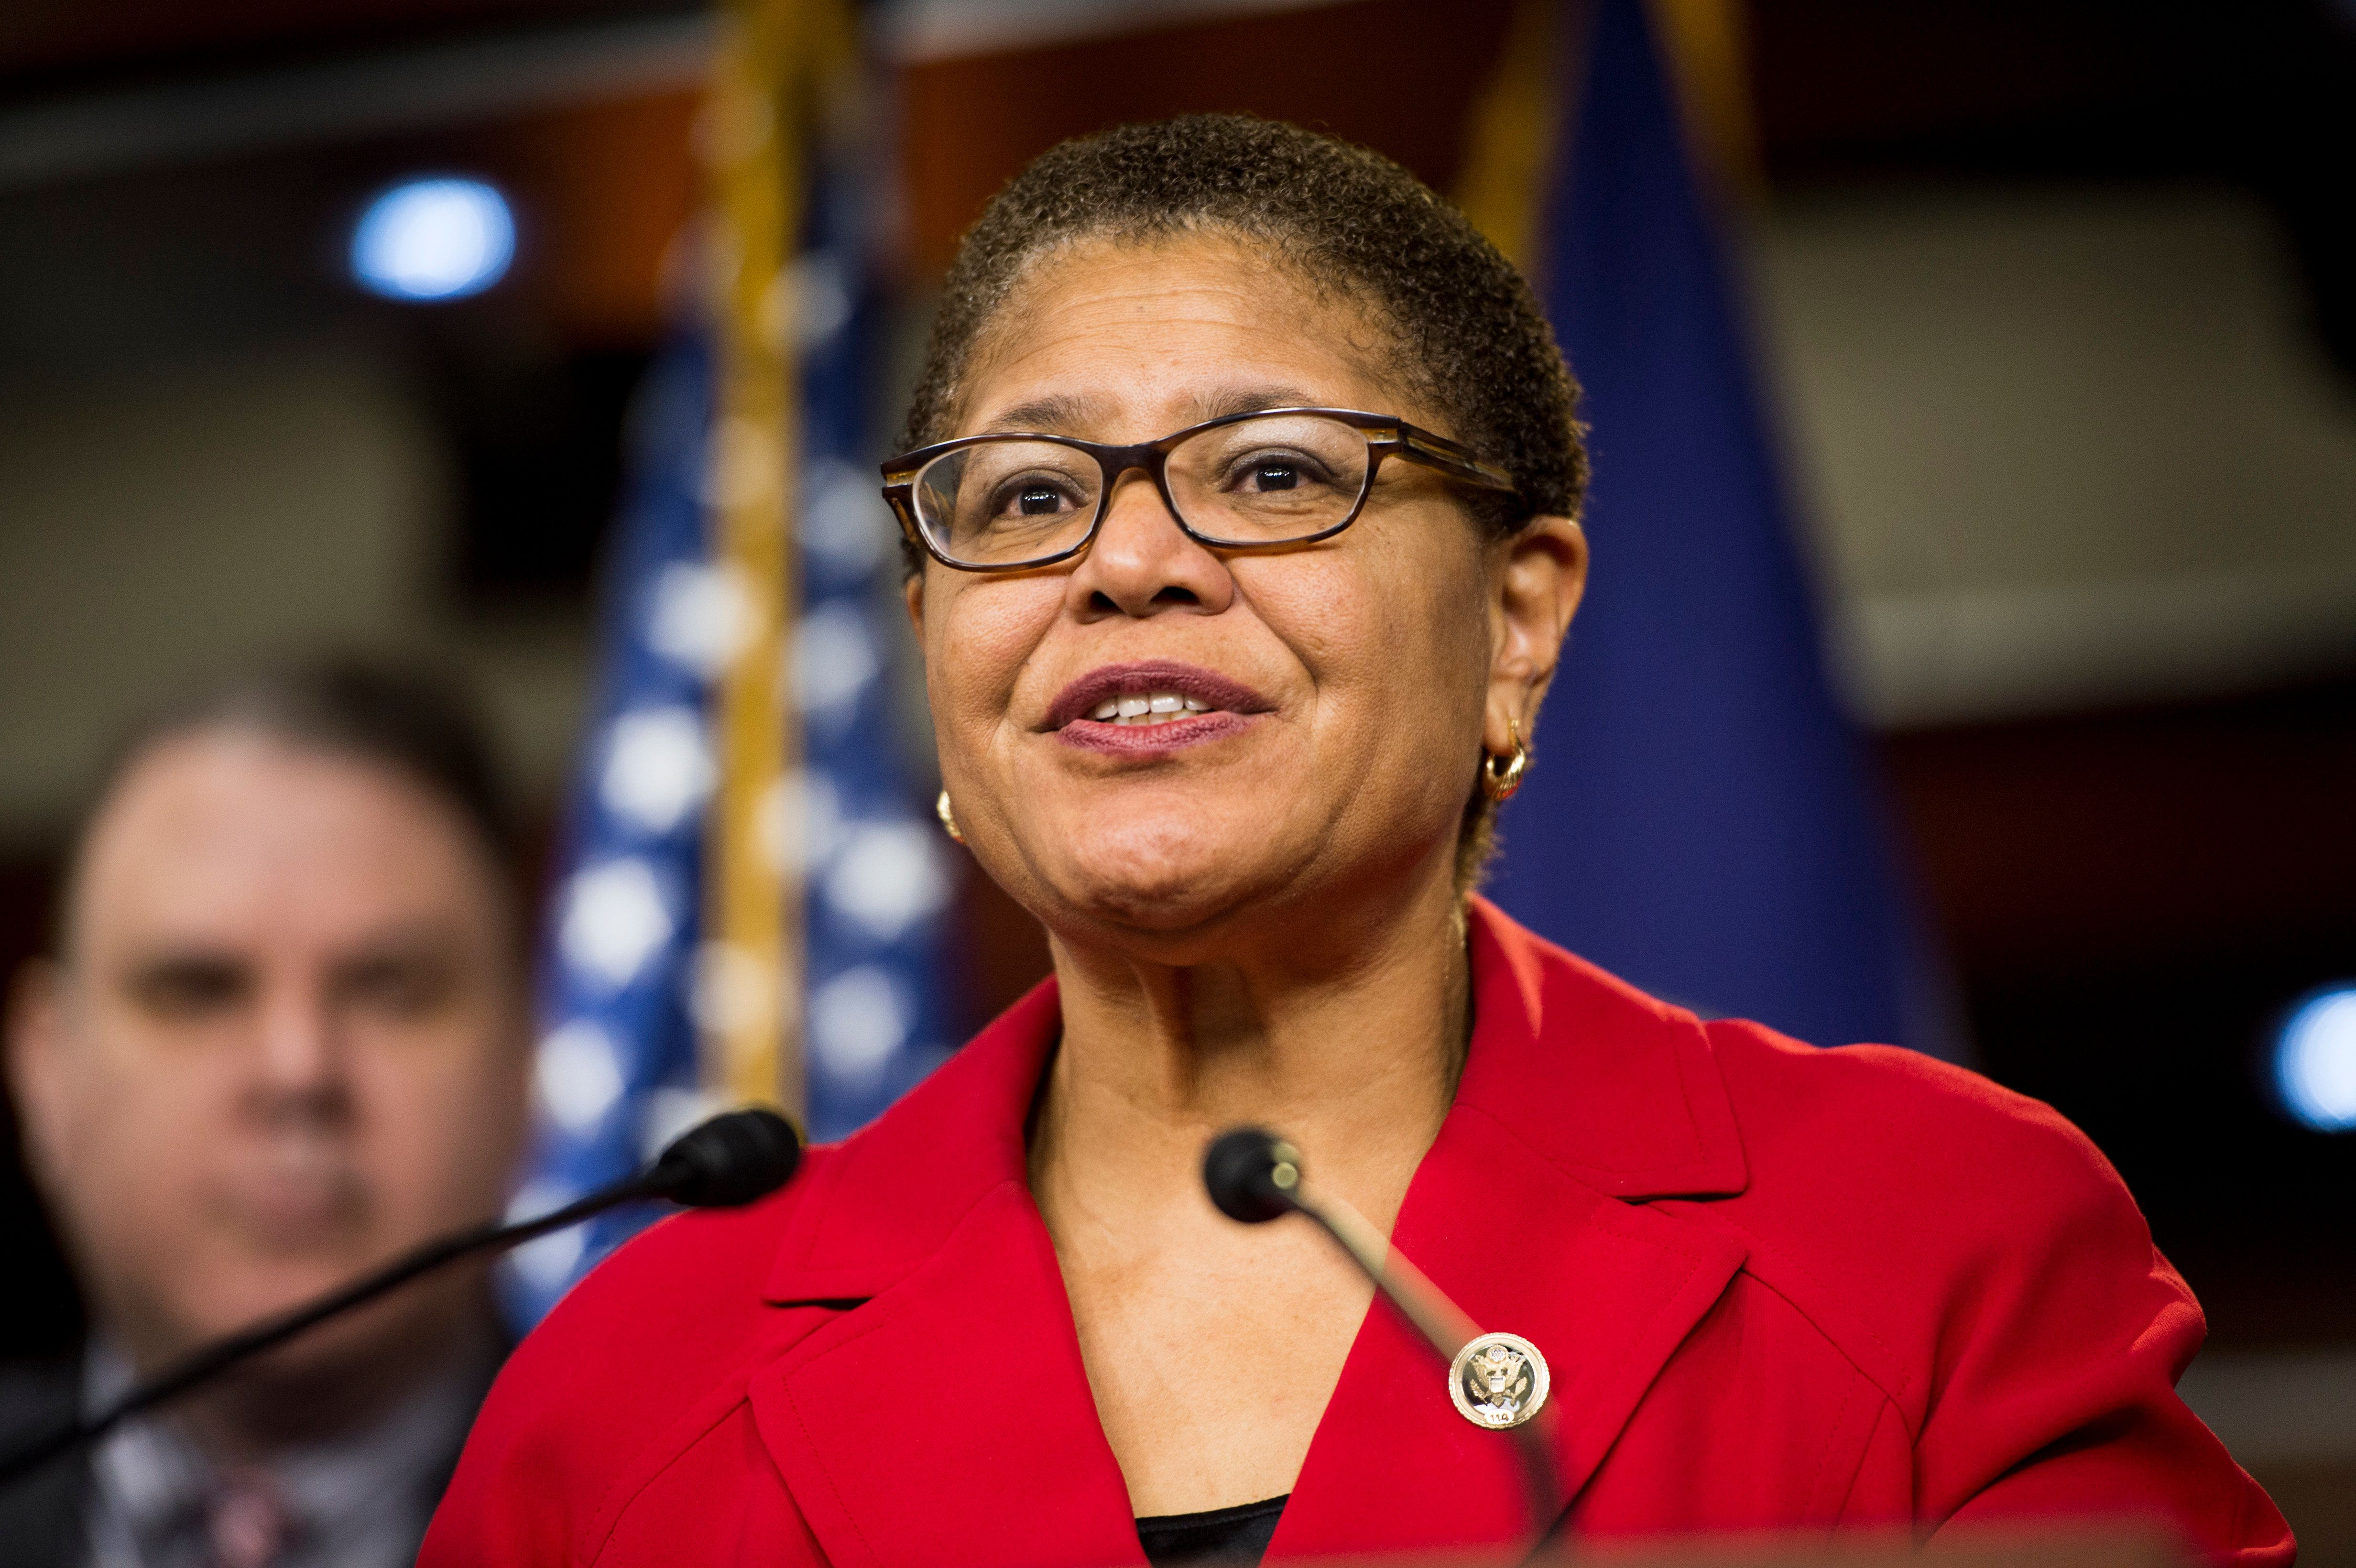 UNITED STATES - JANUARY 13: Rep. Karen Bass, D-Calif., speaks during a House Democrats' news conference in the Capitol on Tuesday, Jan. 13, 2015, to discuss plans to educate immigrant communities for the implementation of the executive actions on immigration announced by President Obama in November. (Photo By Bill Clark/CQ Roll Call)